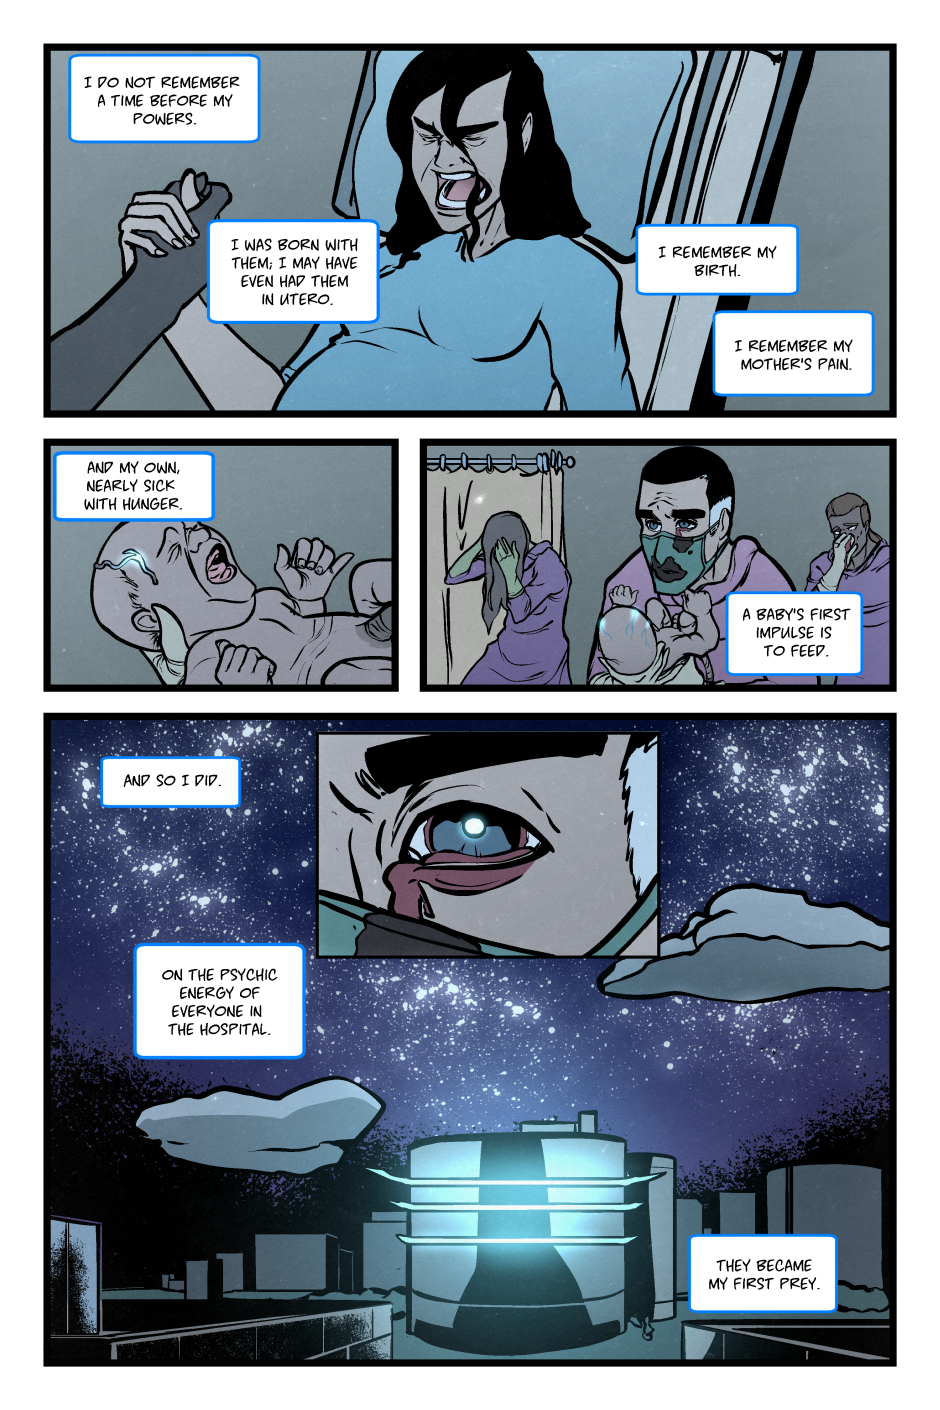 ToW01pg12